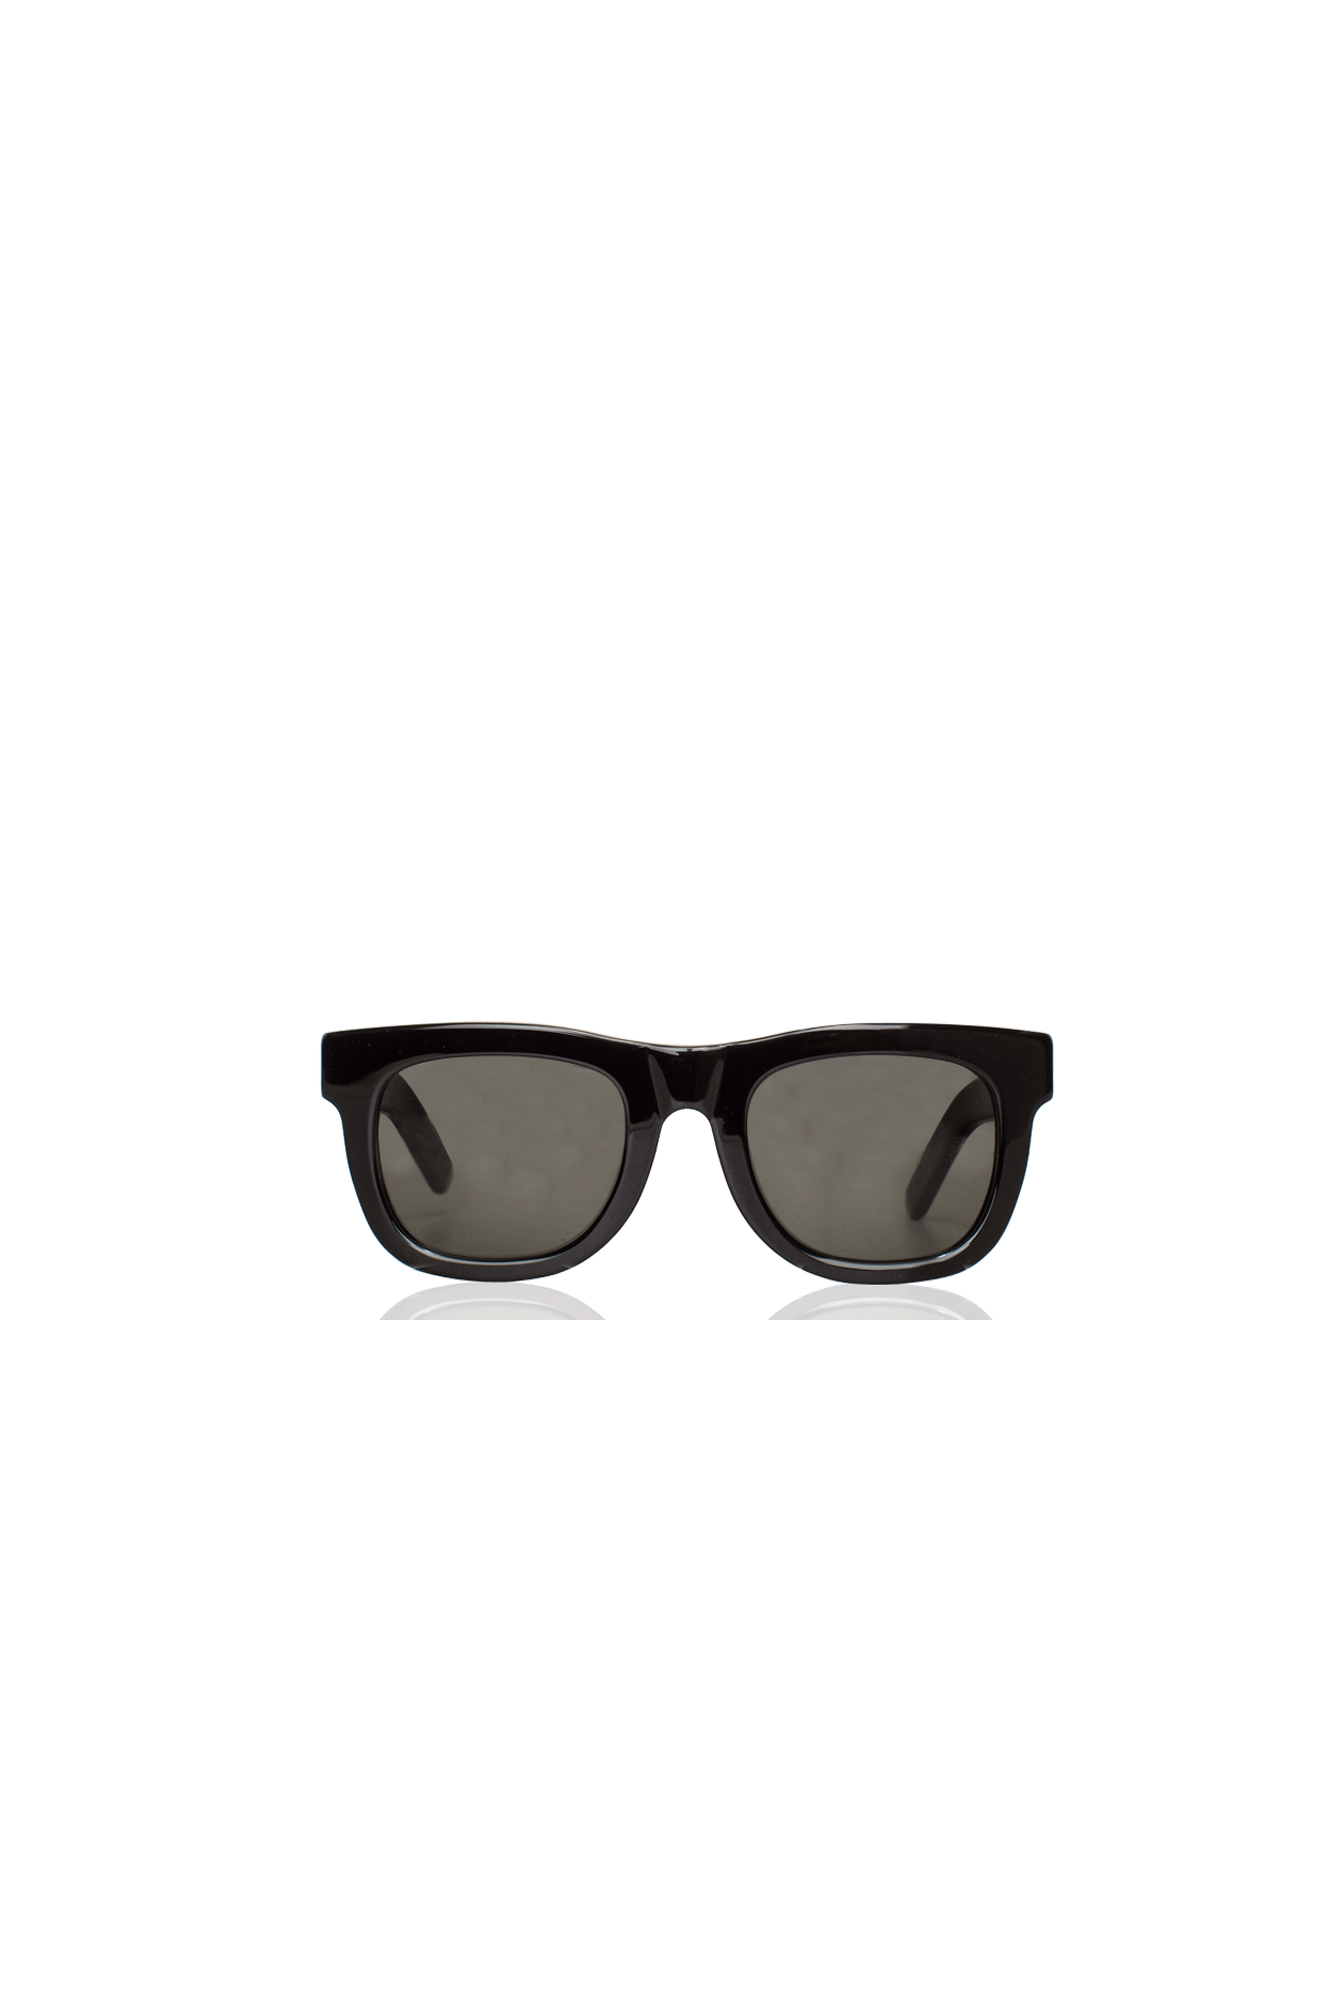 Retrosuperfuture Sunglasses Ciccio Black IPO1#000#BLK#OS - One Block Down